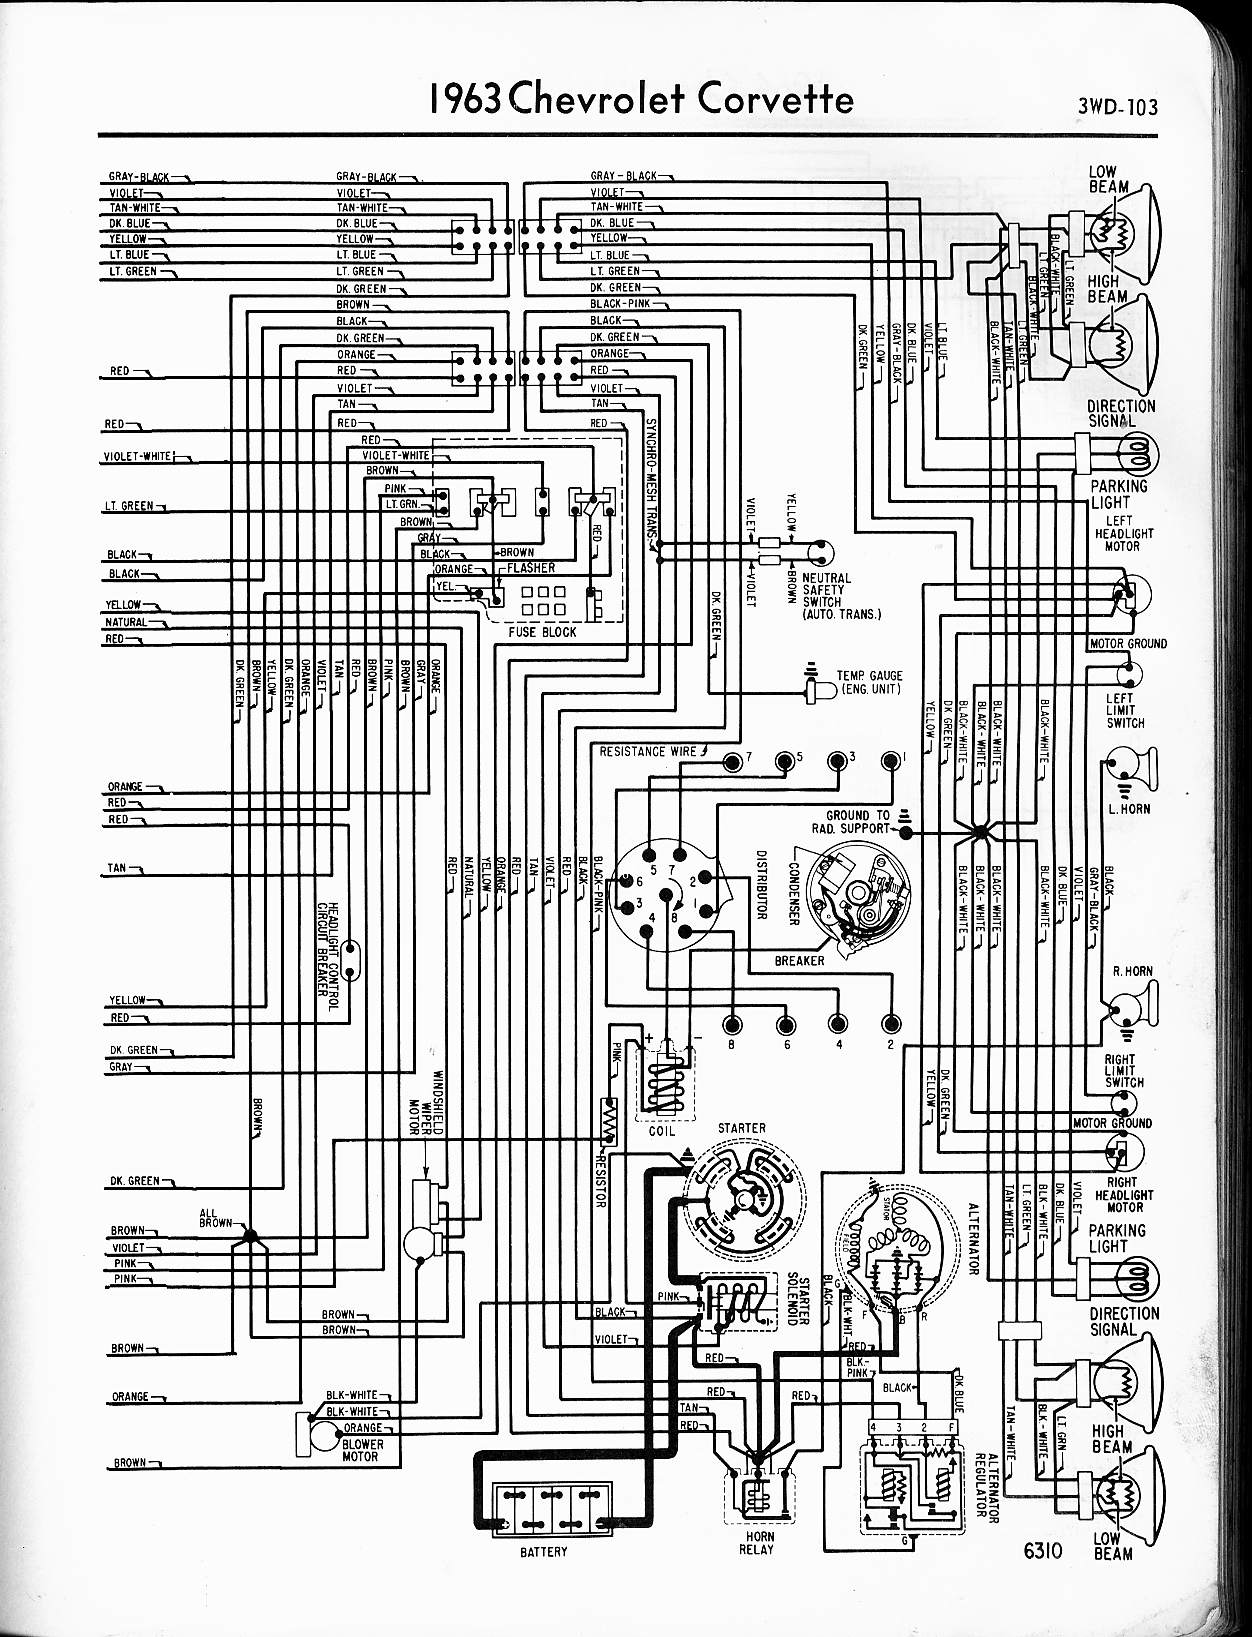 1963 bel air wiring diagram | better wiring diagram online 65 bel air wire diagram 1953 bel air wiring diagram